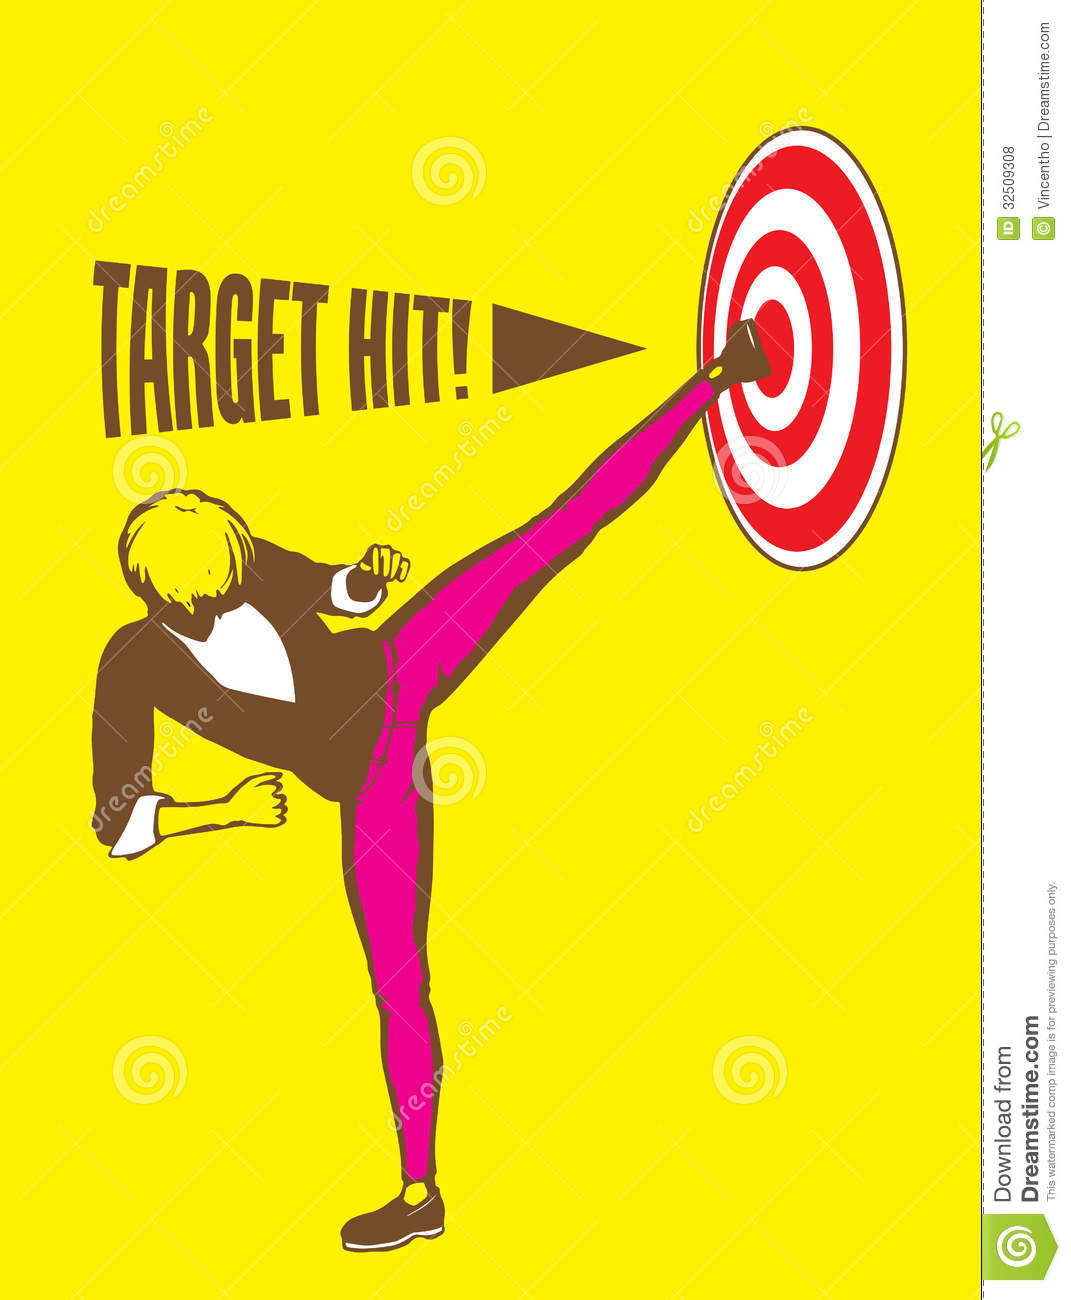 Congratulation, you have hit the target which you have set your sight ...